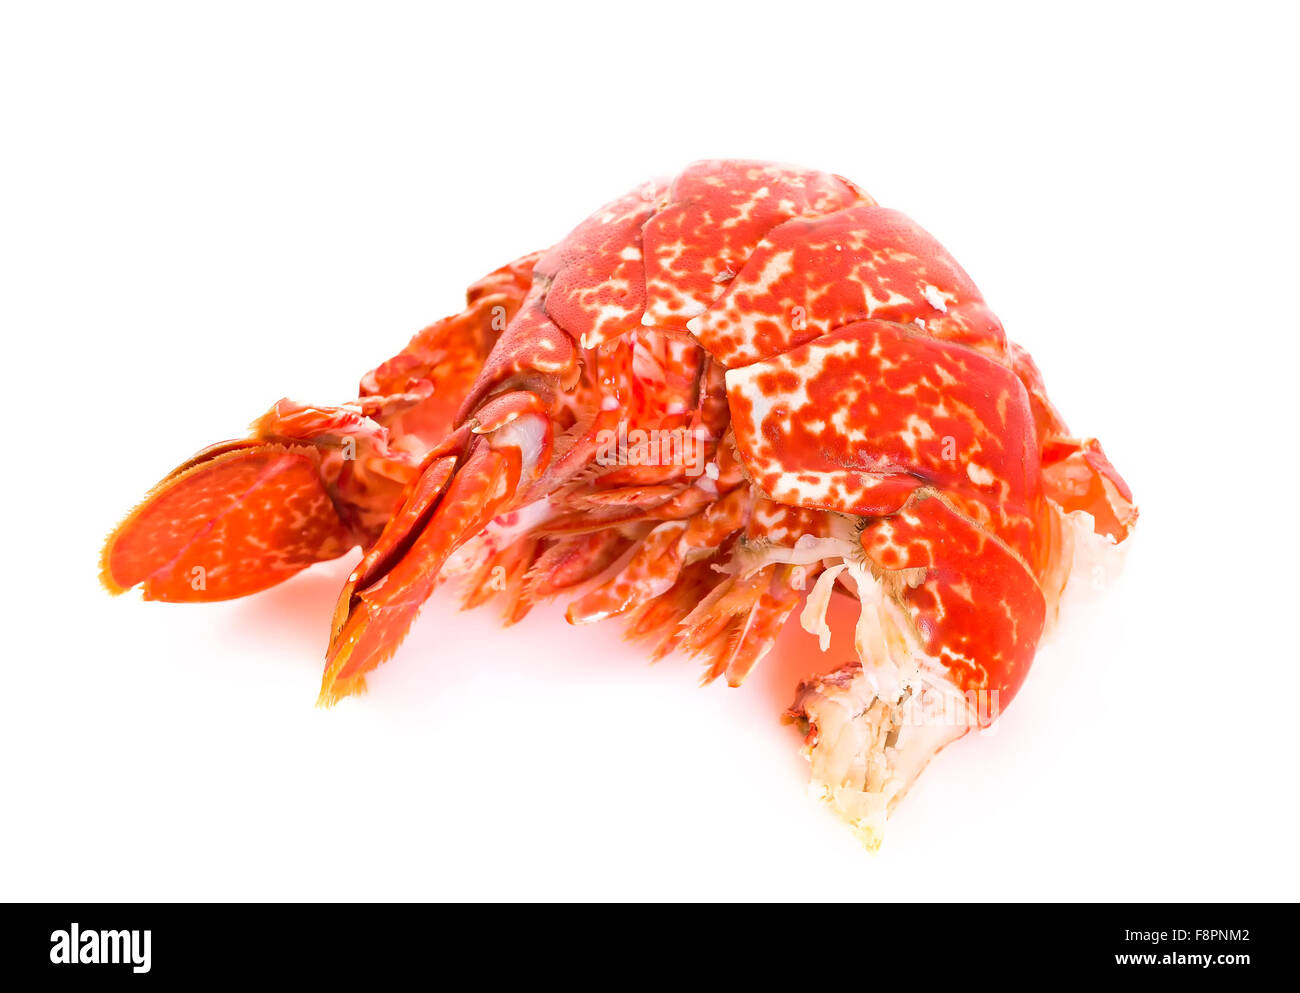 Tail of a Cooked European Common Lobster isolated on a white studio background. Stock Photo